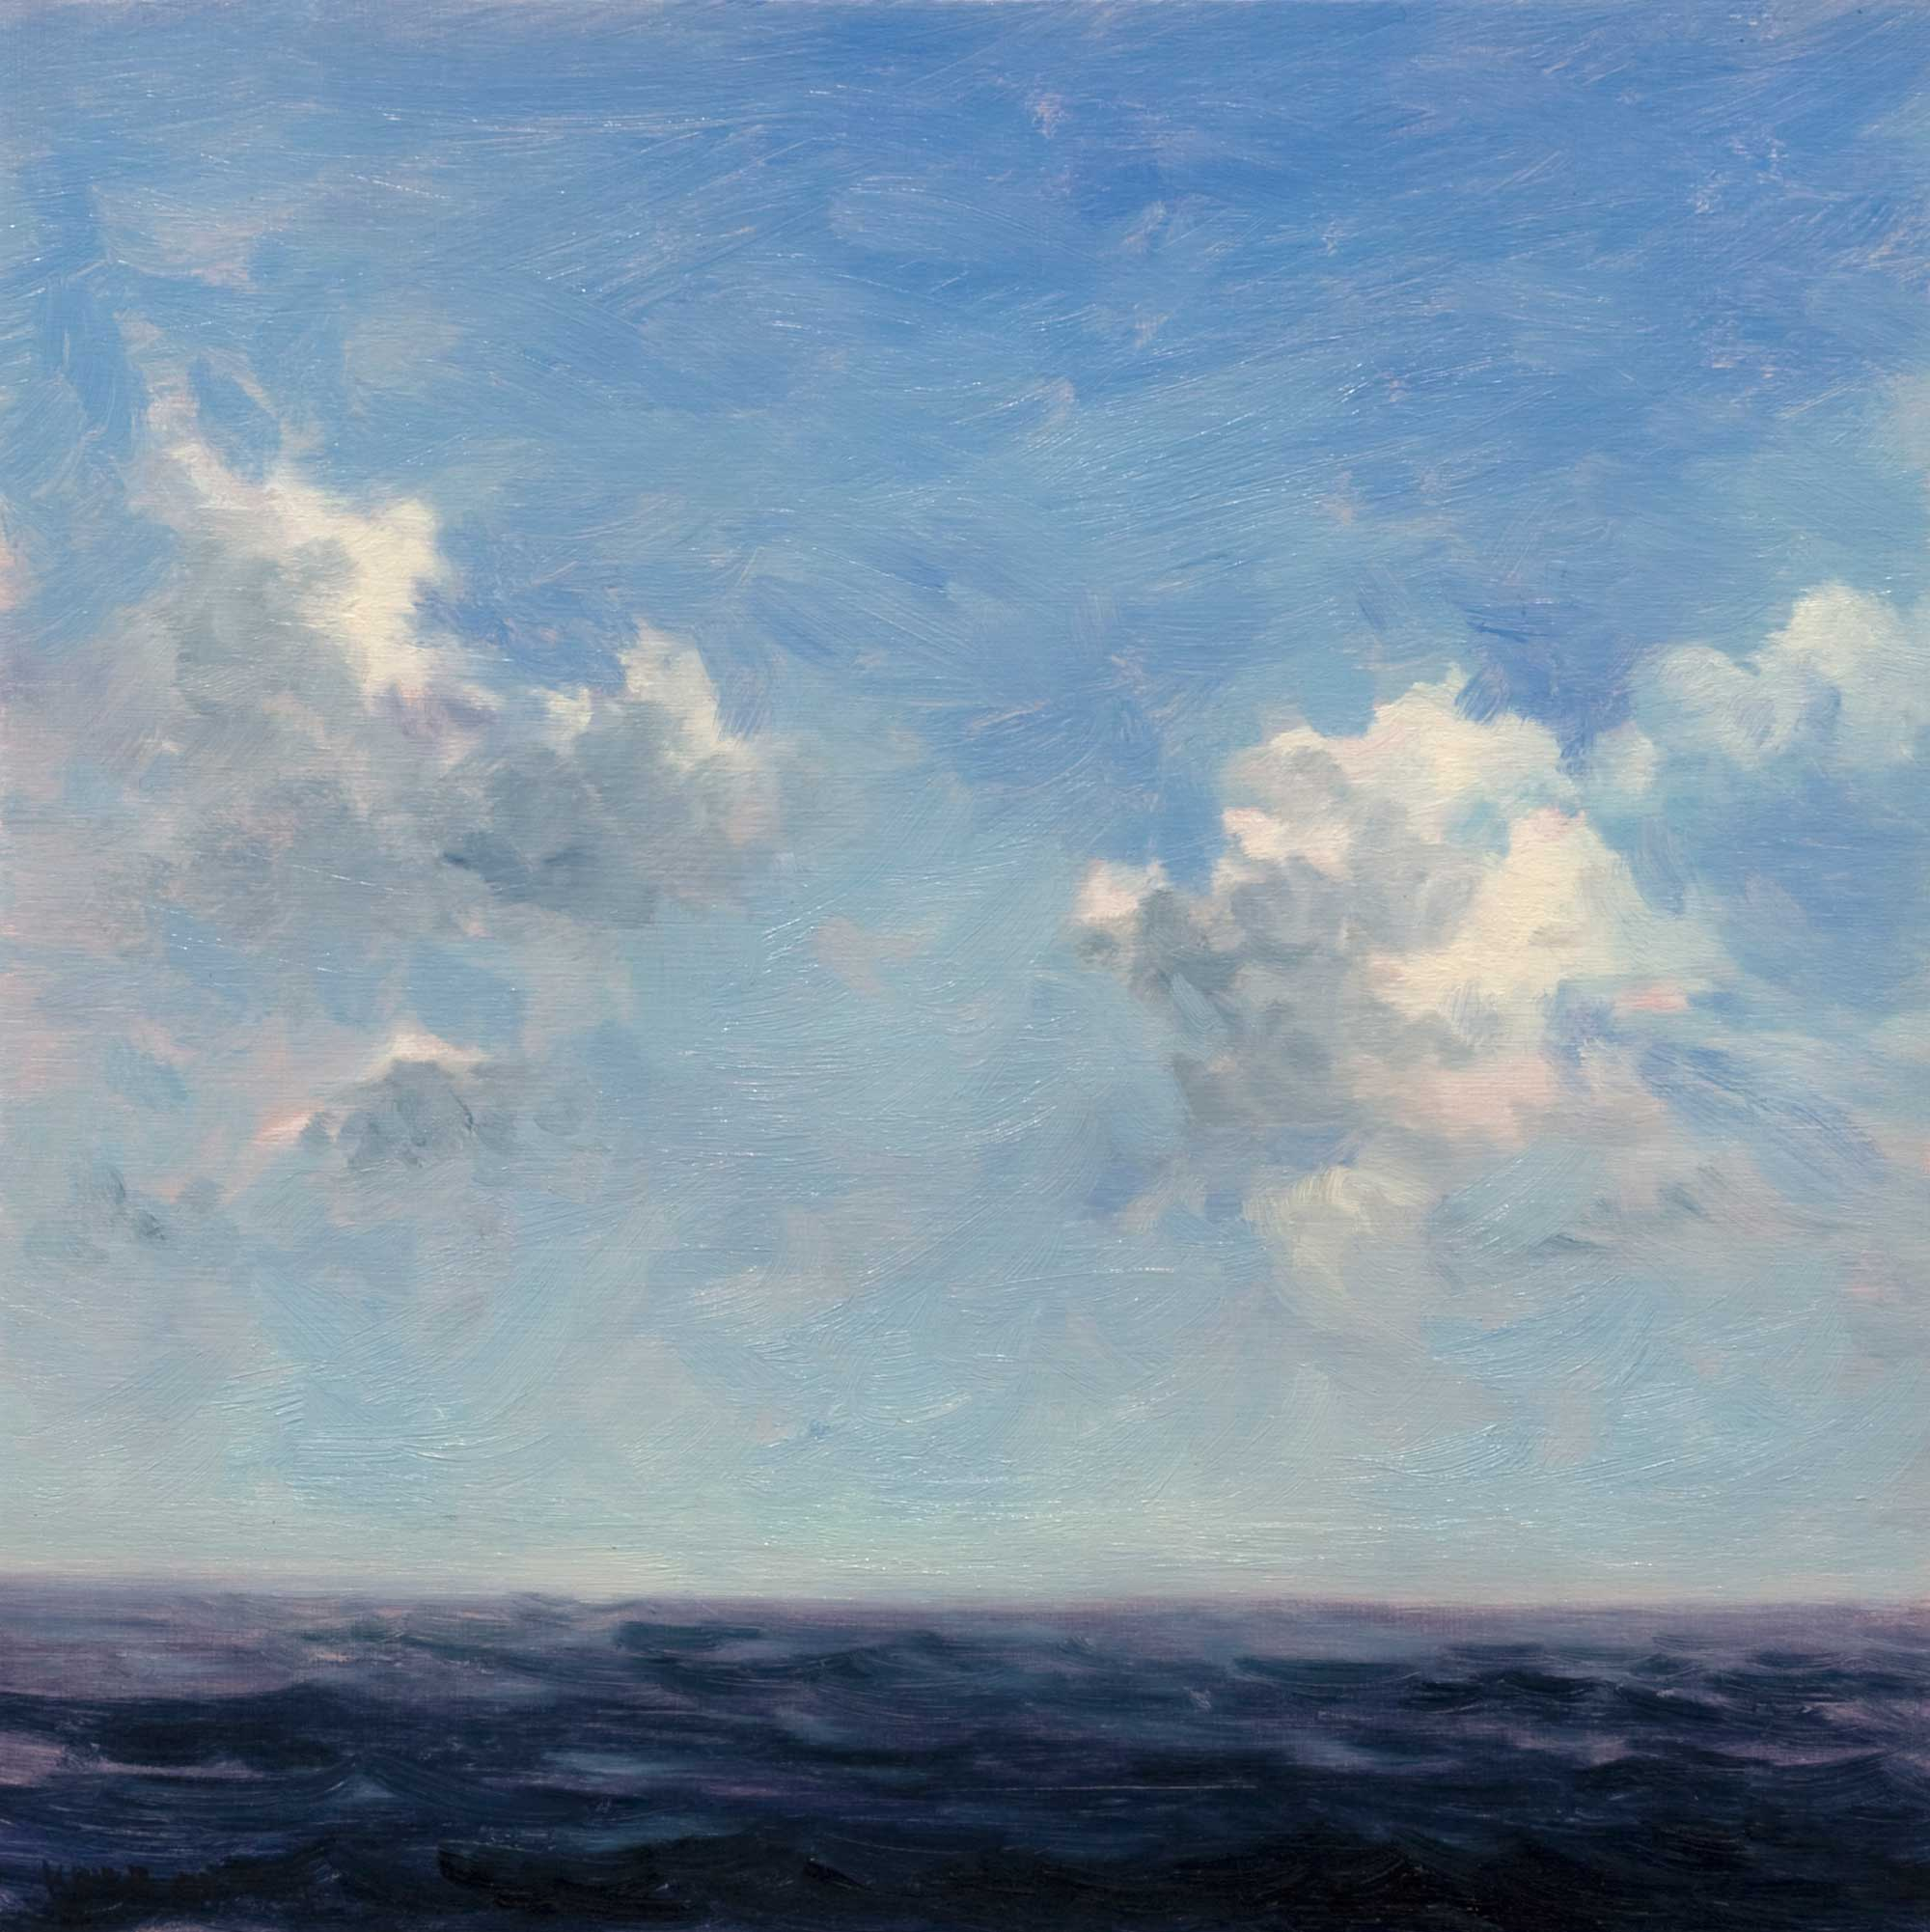 Keith Oehmig Clouds Over the Sea